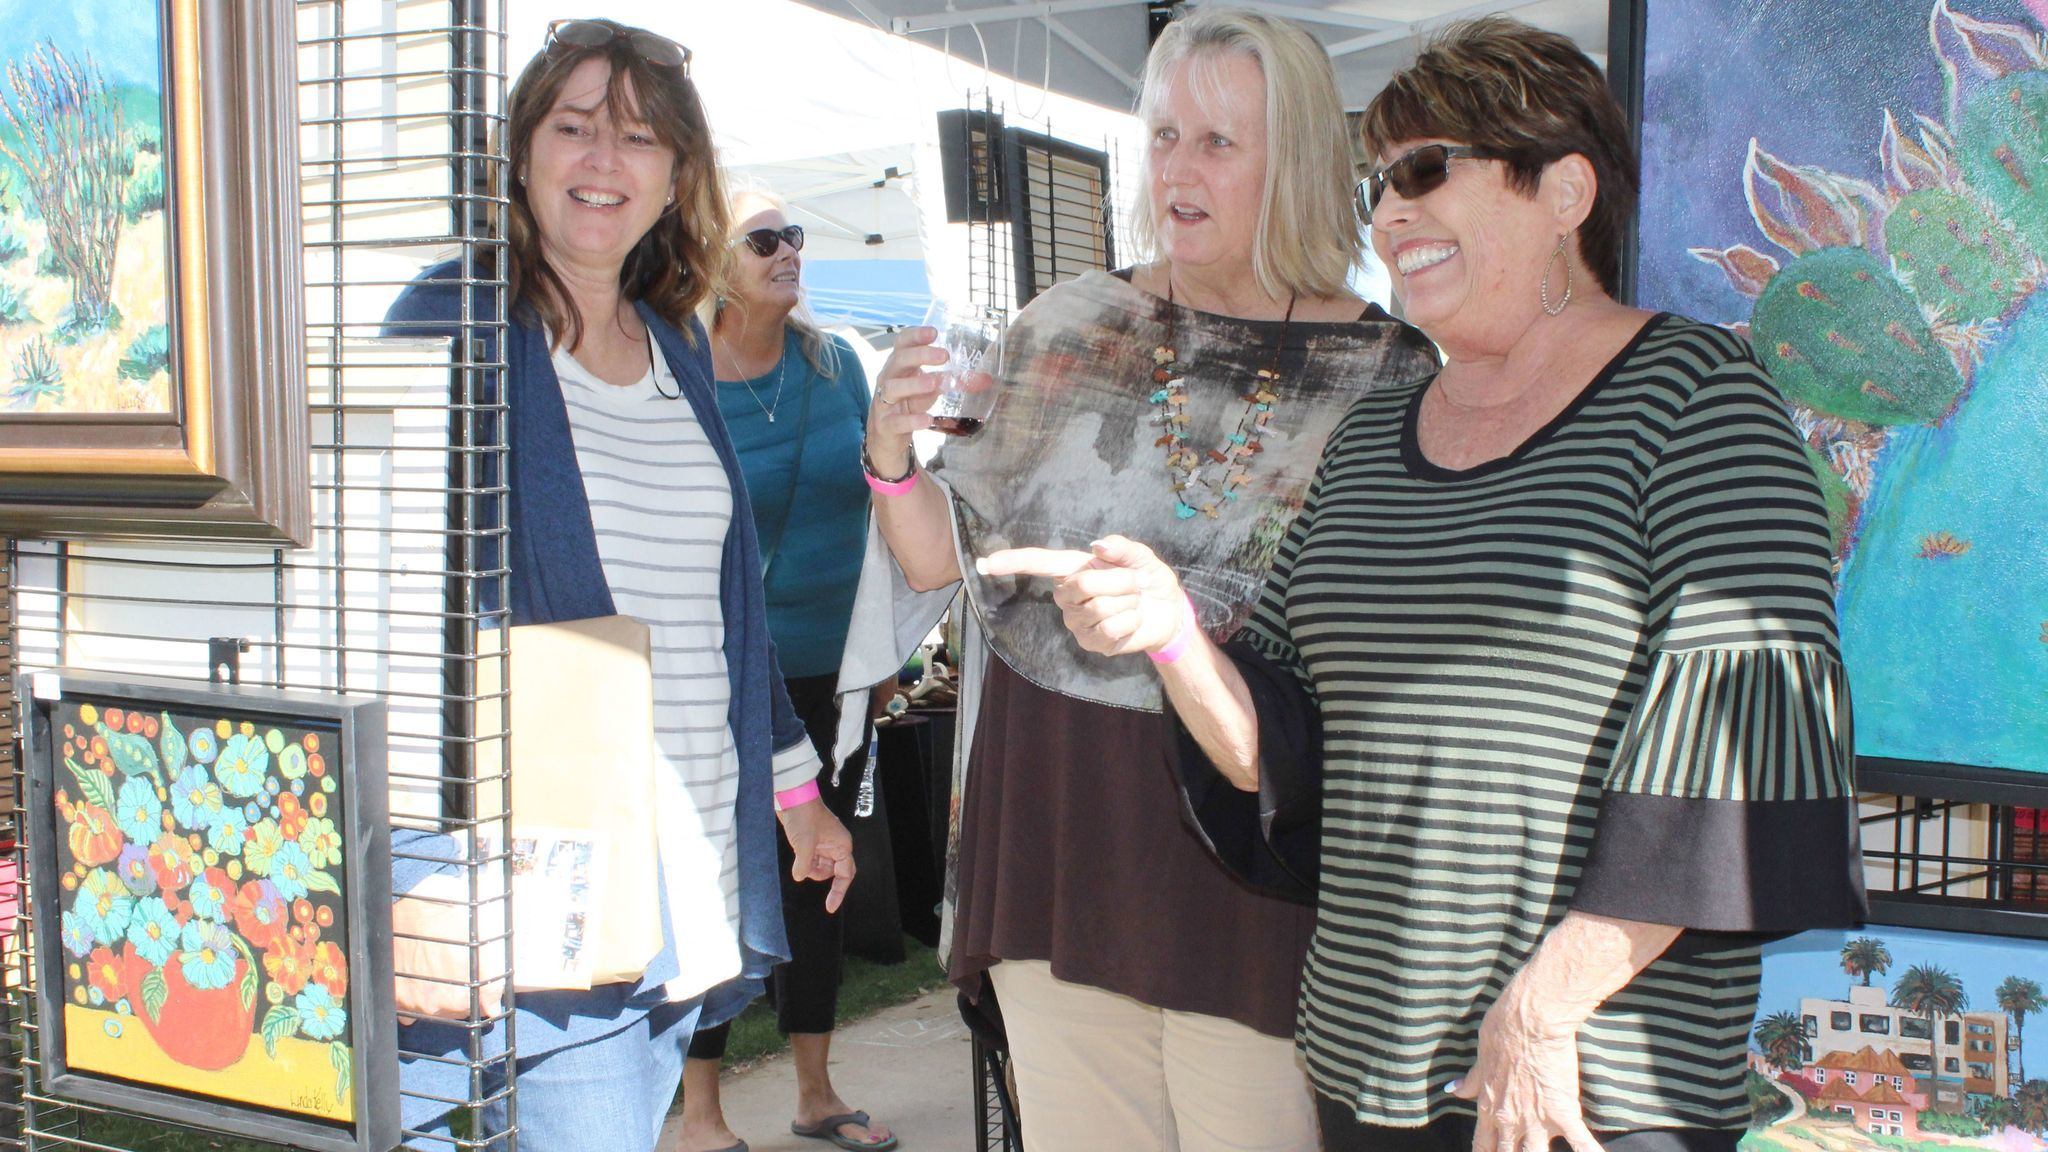 From left, Ramona residents Lori Hardesty and Shelley Gilbert, both 1978 Ramona High School graduates, talk with artist Linda Kelly about one of her works.